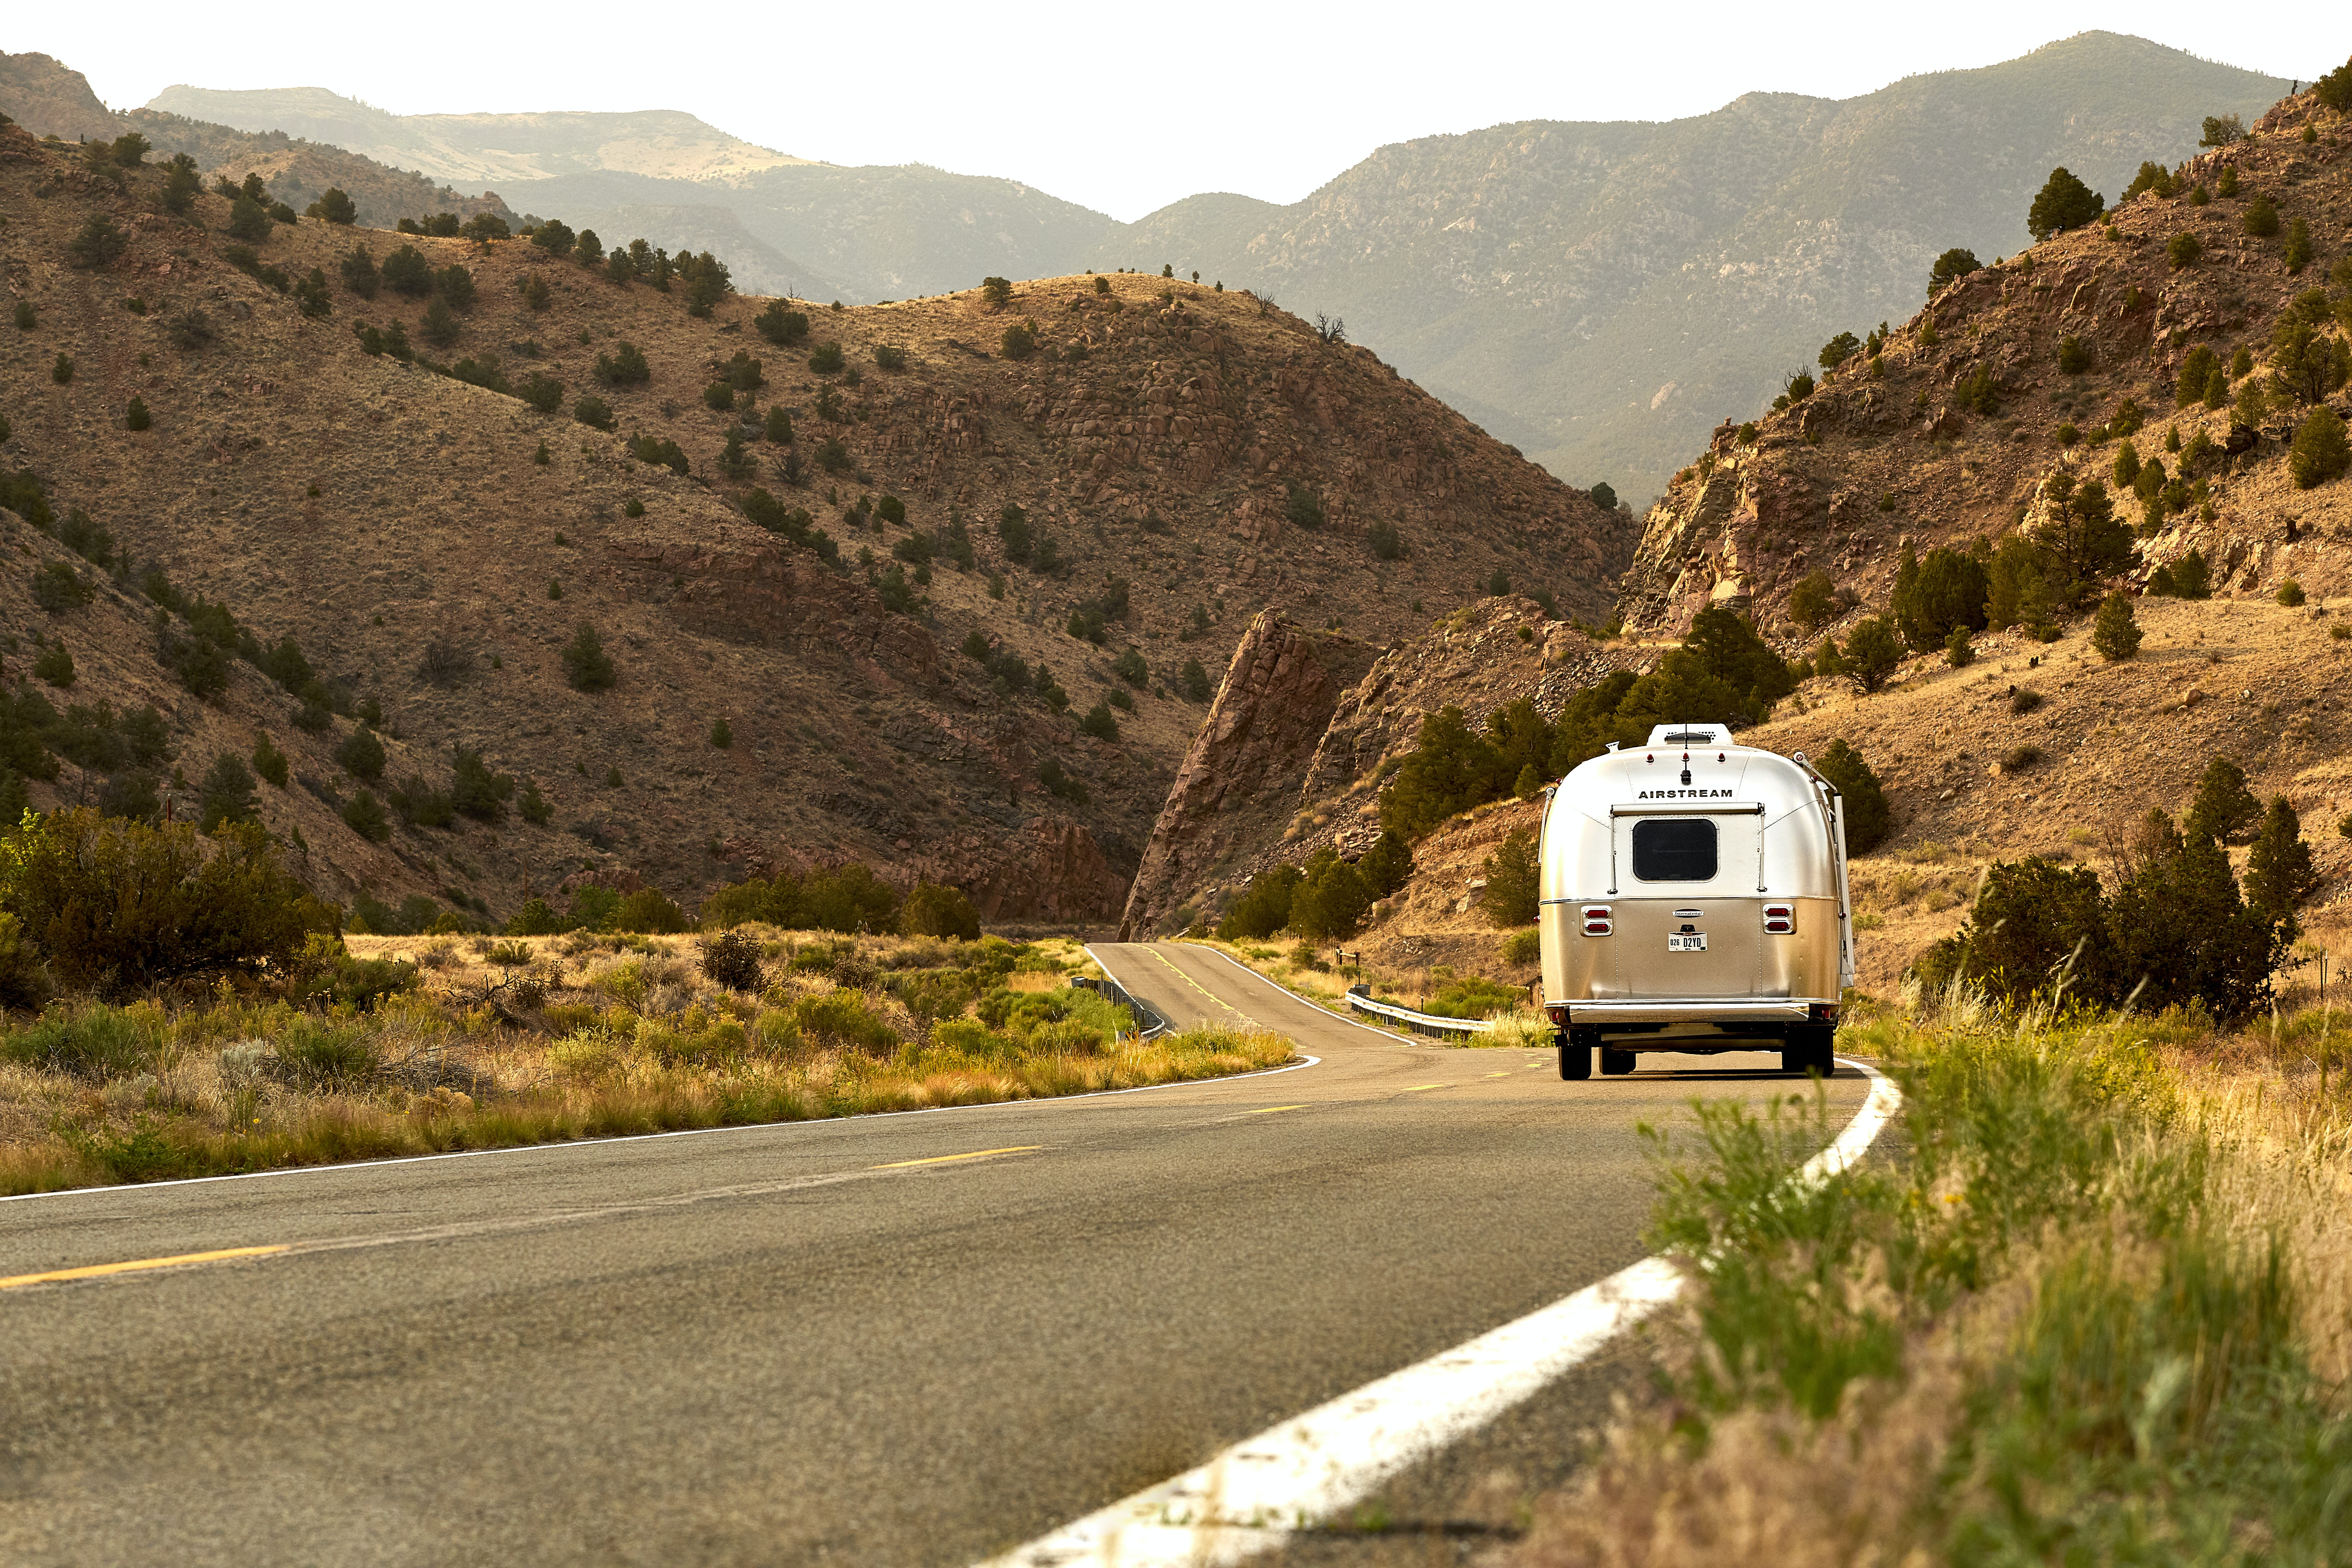 landscape photography of brown and white motorhome on road